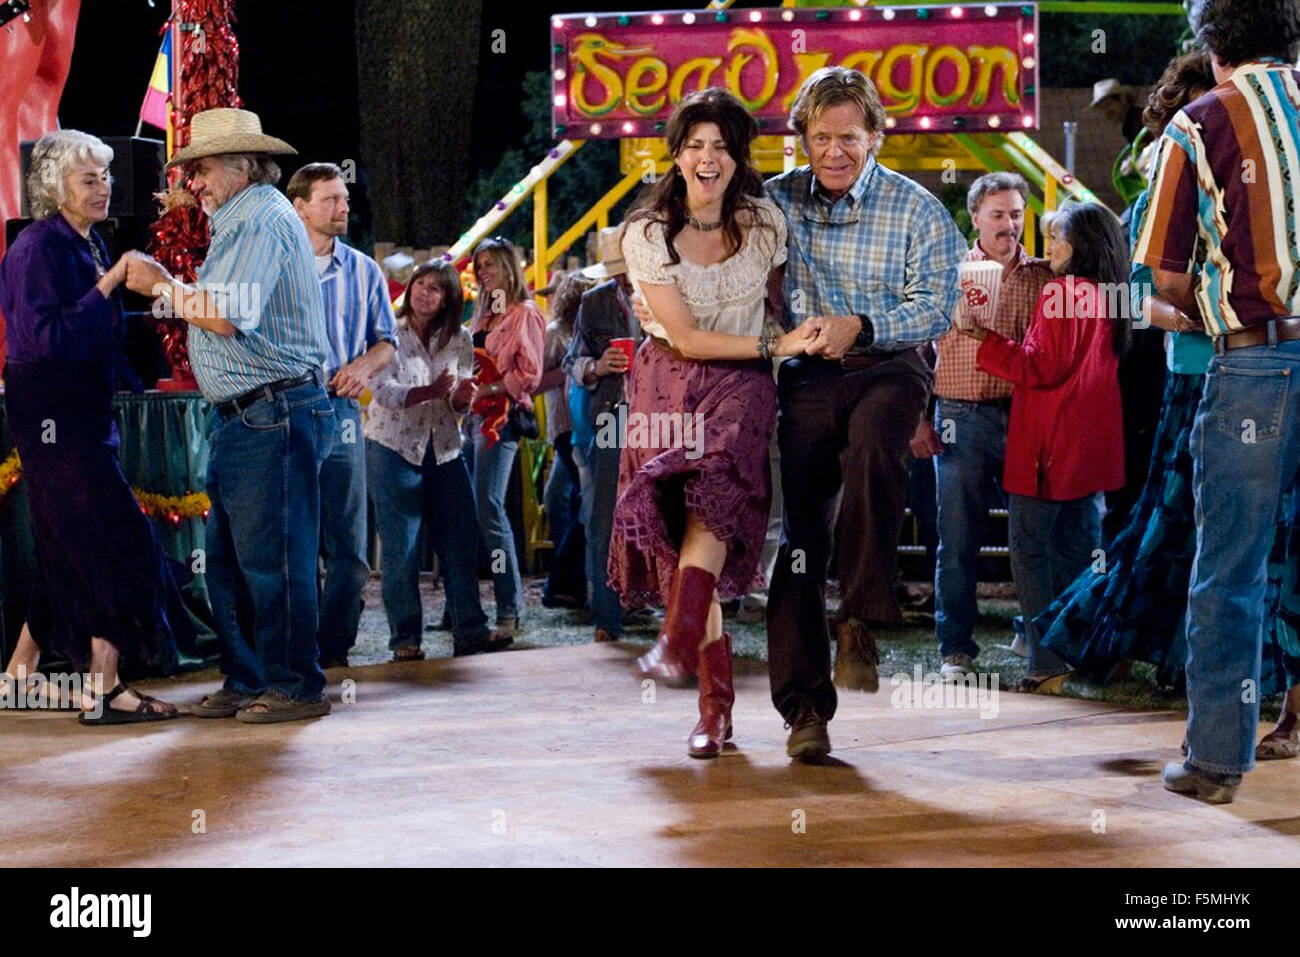 WILD HOGS 2007 Touchstone Pictures film with Marisa Tomei and William Macy - Stock Image